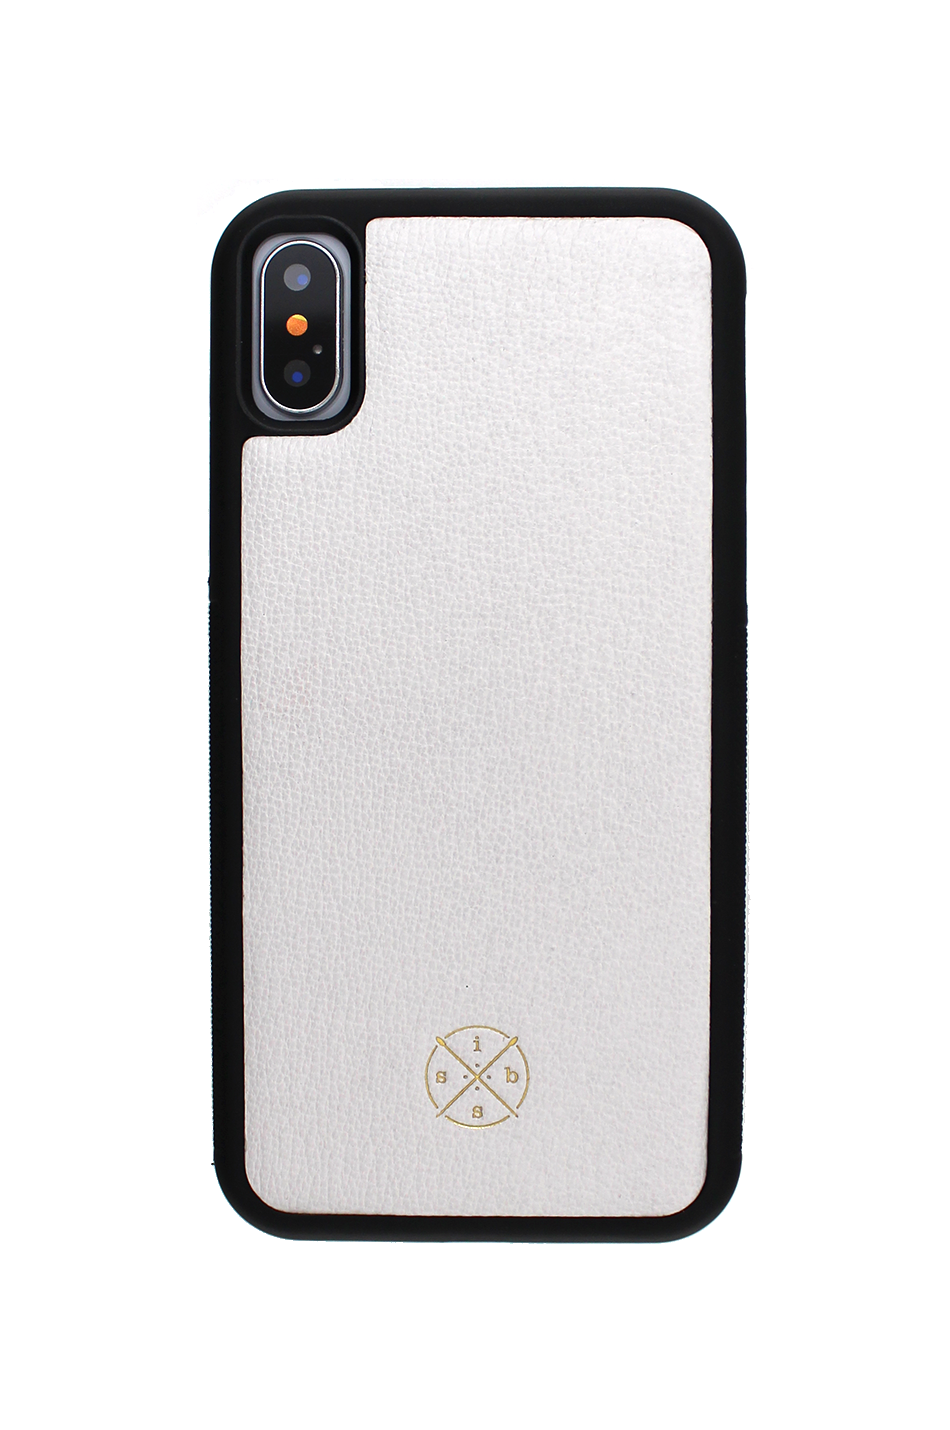 Mobello Leather Case Black White Skal från Mobello Leather Case till iPhone X